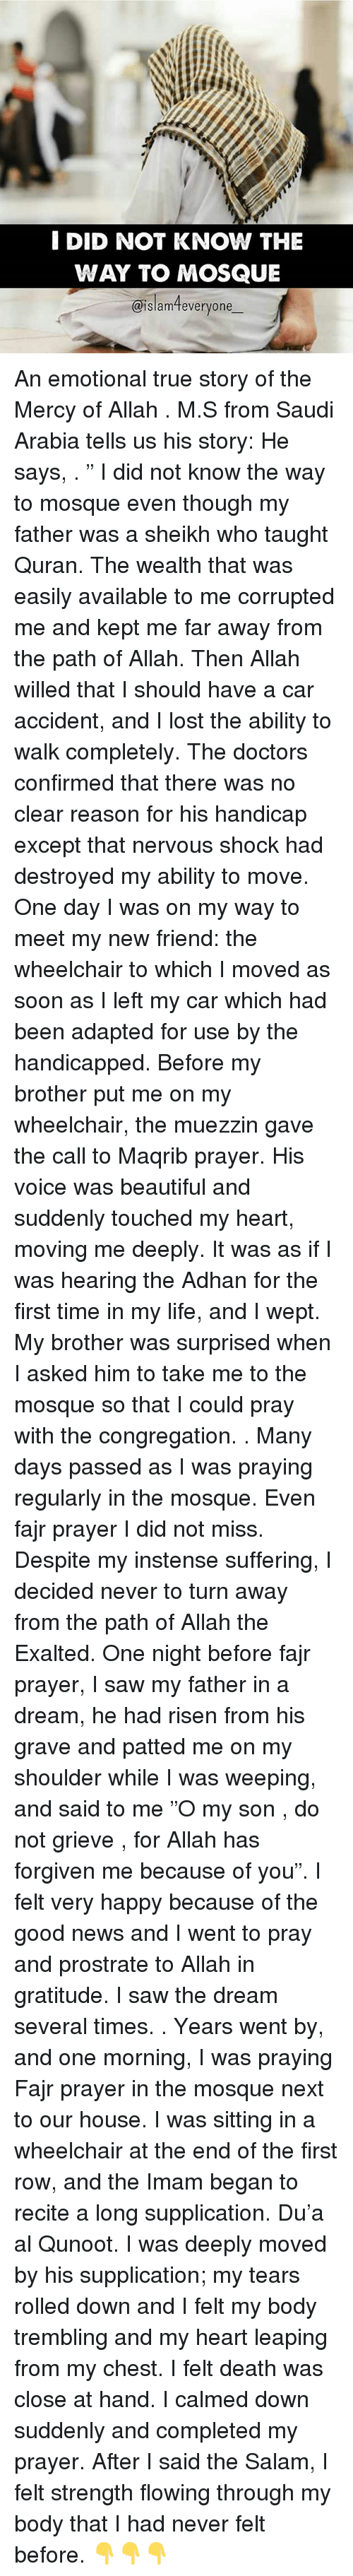 "A Dream, Beautiful, and Life: I DID NOT KNOW THE  WAY TO MOSQUE  islam everyone An emotional true story of the Mercy of Allah . M.S from Saudi Arabia tells us his story: He says, . "" I did not know the way to mosque even though my father was a sheikh who taught Quran. The wealth that was easily available to me corrupted me and kept me far away from the path of Allah. Then Allah willed that I should have a car accident, and I lost the ability to walk completely. The doctors confirmed that there was no clear reason for his handicap except that nervous shock had destroyed my ability to move. One day I was on my way to meet my new friend: the wheelchair to which I moved as soon as I left my car which had been adapted for use by the handicapped. Before my brother put me on my wheelchair, the muezzin gave the call to Maqrib prayer. His voice was beautiful and suddenly touched my heart, moving me deeply. It was as if I was hearing the Adhan for the first time in my life, and I wept. My brother was surprised when I asked him to take me to the mosque so that I could pray with the congregation. . Many days passed as I was praying regularly in the mosque. Even fajr prayer I did not miss. Despite my instense suffering, I decided never to turn away from the path of Allah the Exalted. One night before fajr prayer, I saw my father in a dream, he had risen from his grave and patted me on my shoulder while I was weeping, and said to me ""O my son , do not grieve , for Allah has forgiven me because of you"". I felt very happy because of the good news and I went to pray and prostrate to Allah in gratitude. I saw the dream several times. . Years went by, and one morning, I was praying Fajr prayer in the mosque next to our house. I was sitting in a wheelchair at the end of the first row, and the Imam began to recite a long supplication. Du'a al Qunoot. I was deeply moved by his supplication; my tears rolled down and I felt my body trembling and my heart leaping from my chest. I felt death was close at hand. I calmed down suddenly and completed my prayer. After I said the Salam, I felt strength flowing through my body that I had never felt before. 👇👇👇"